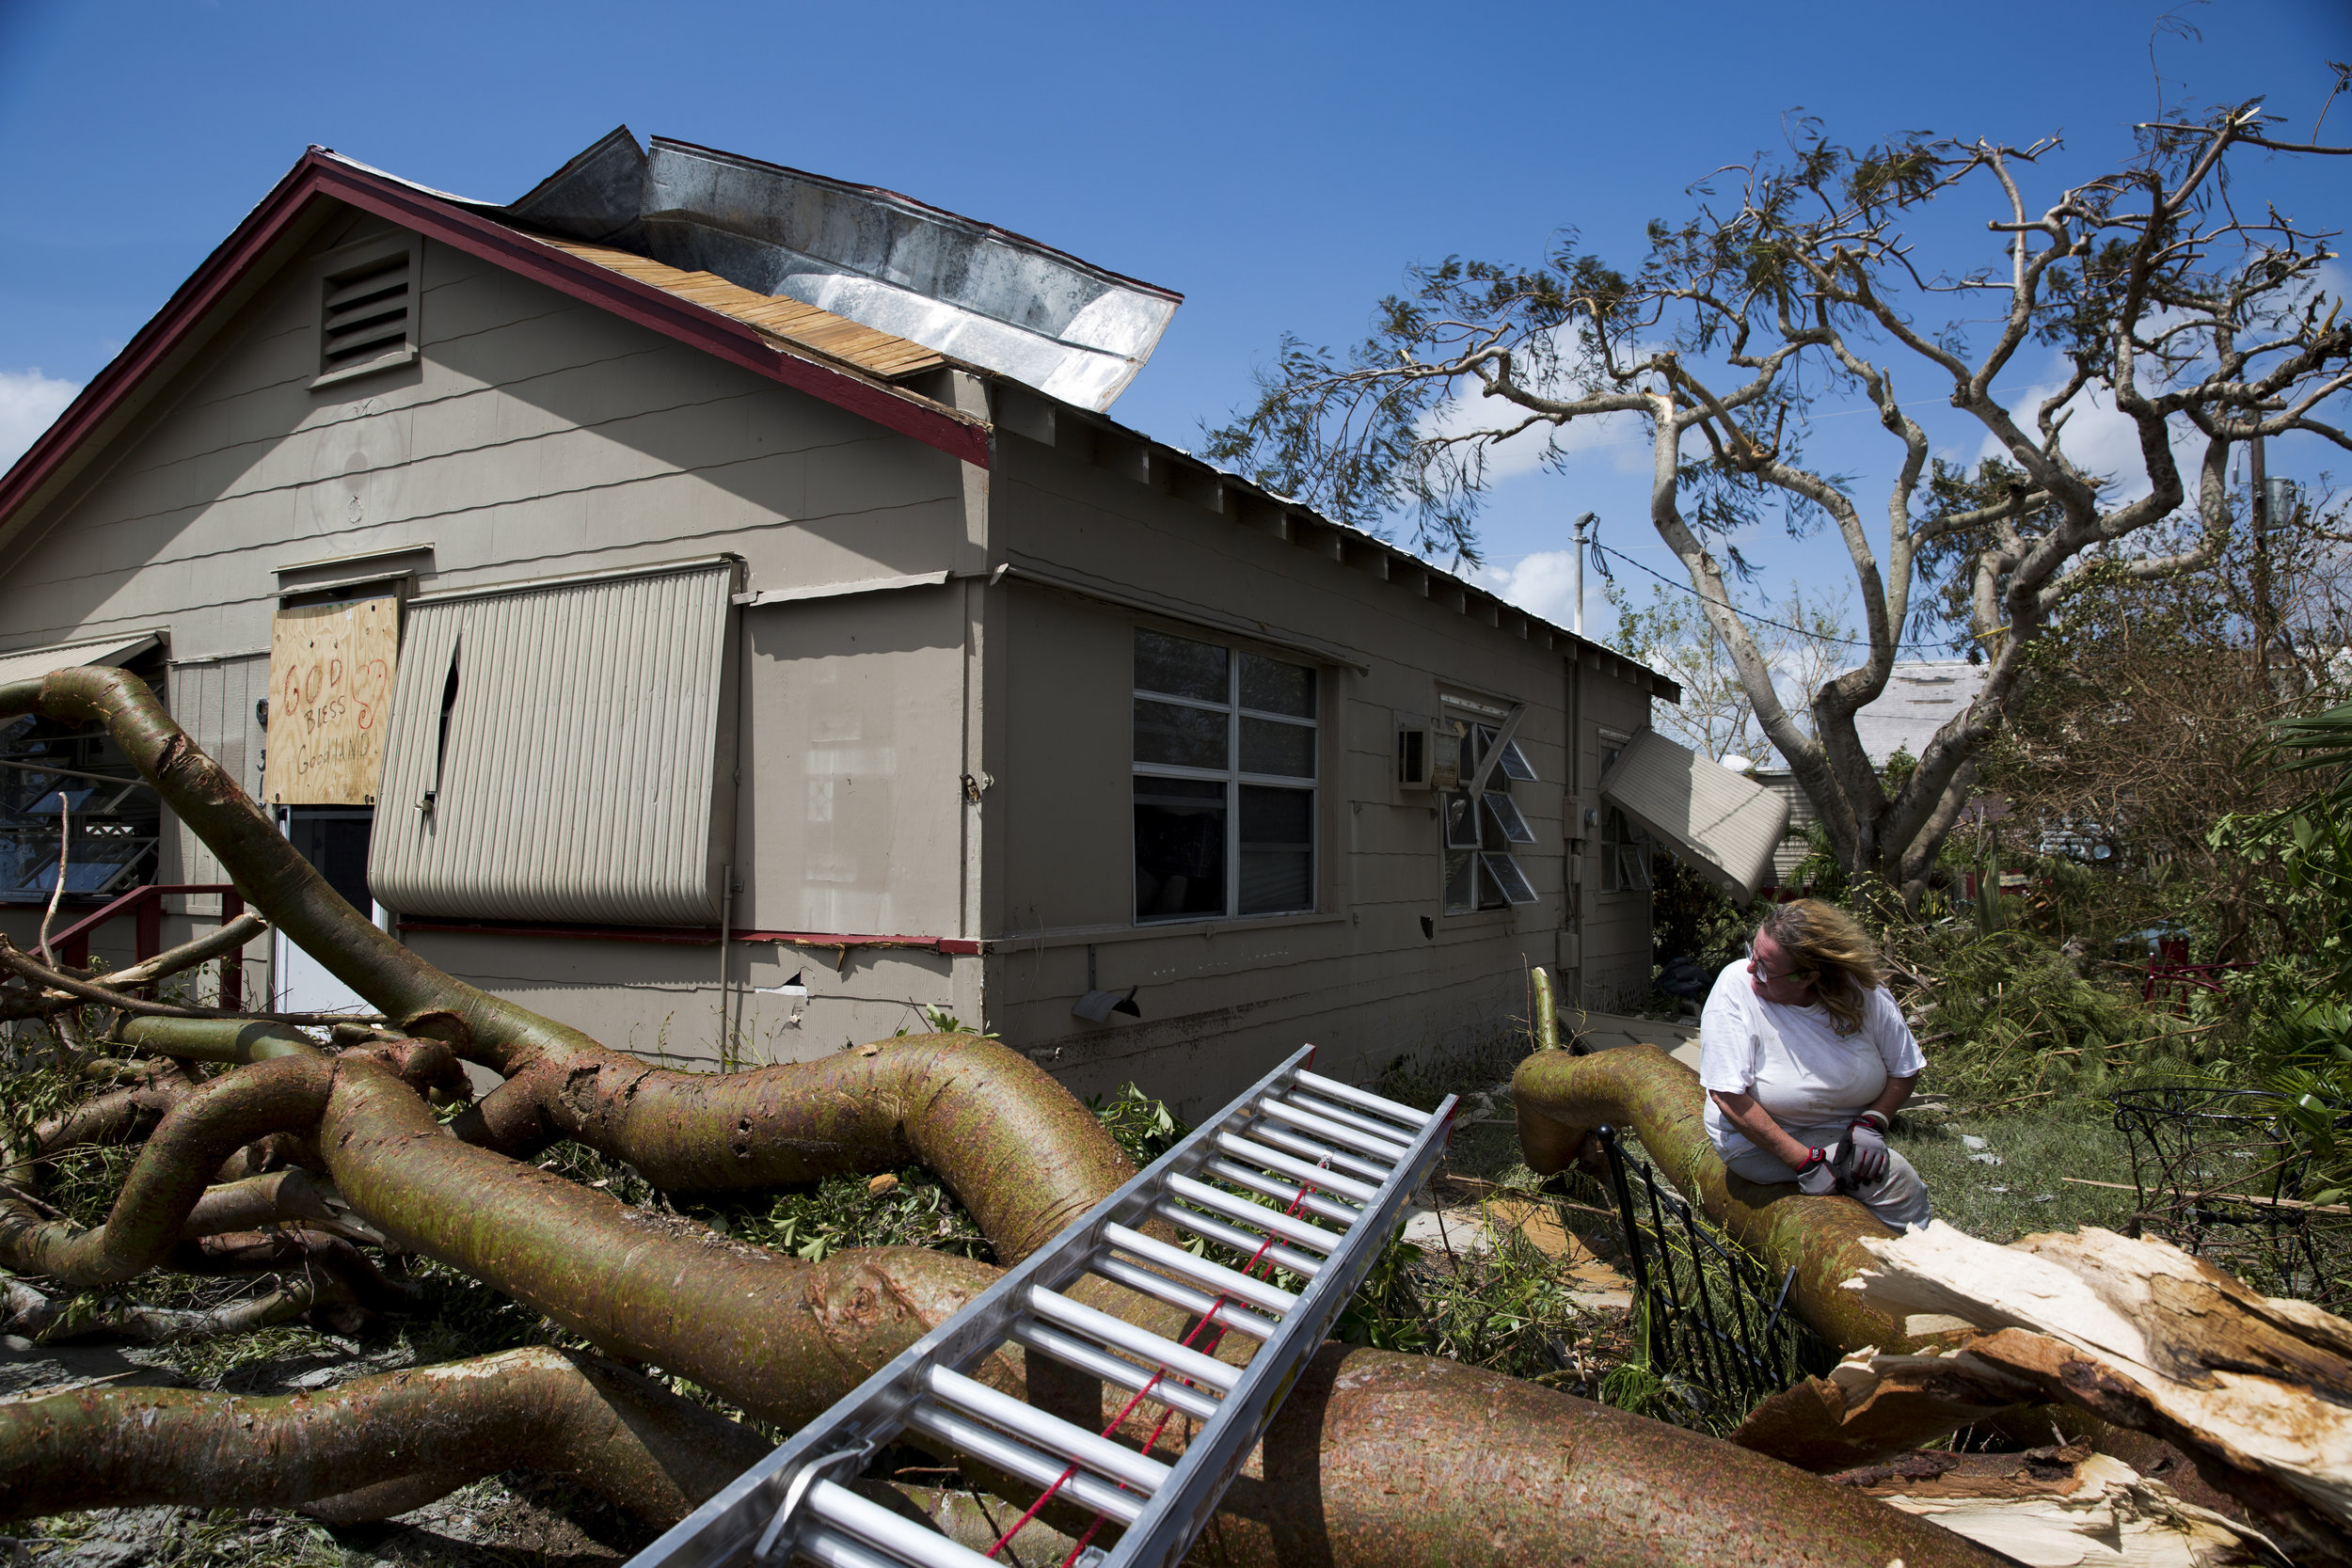 0911_LF_HURRICANE IRMA DAMAGE 45.jpg